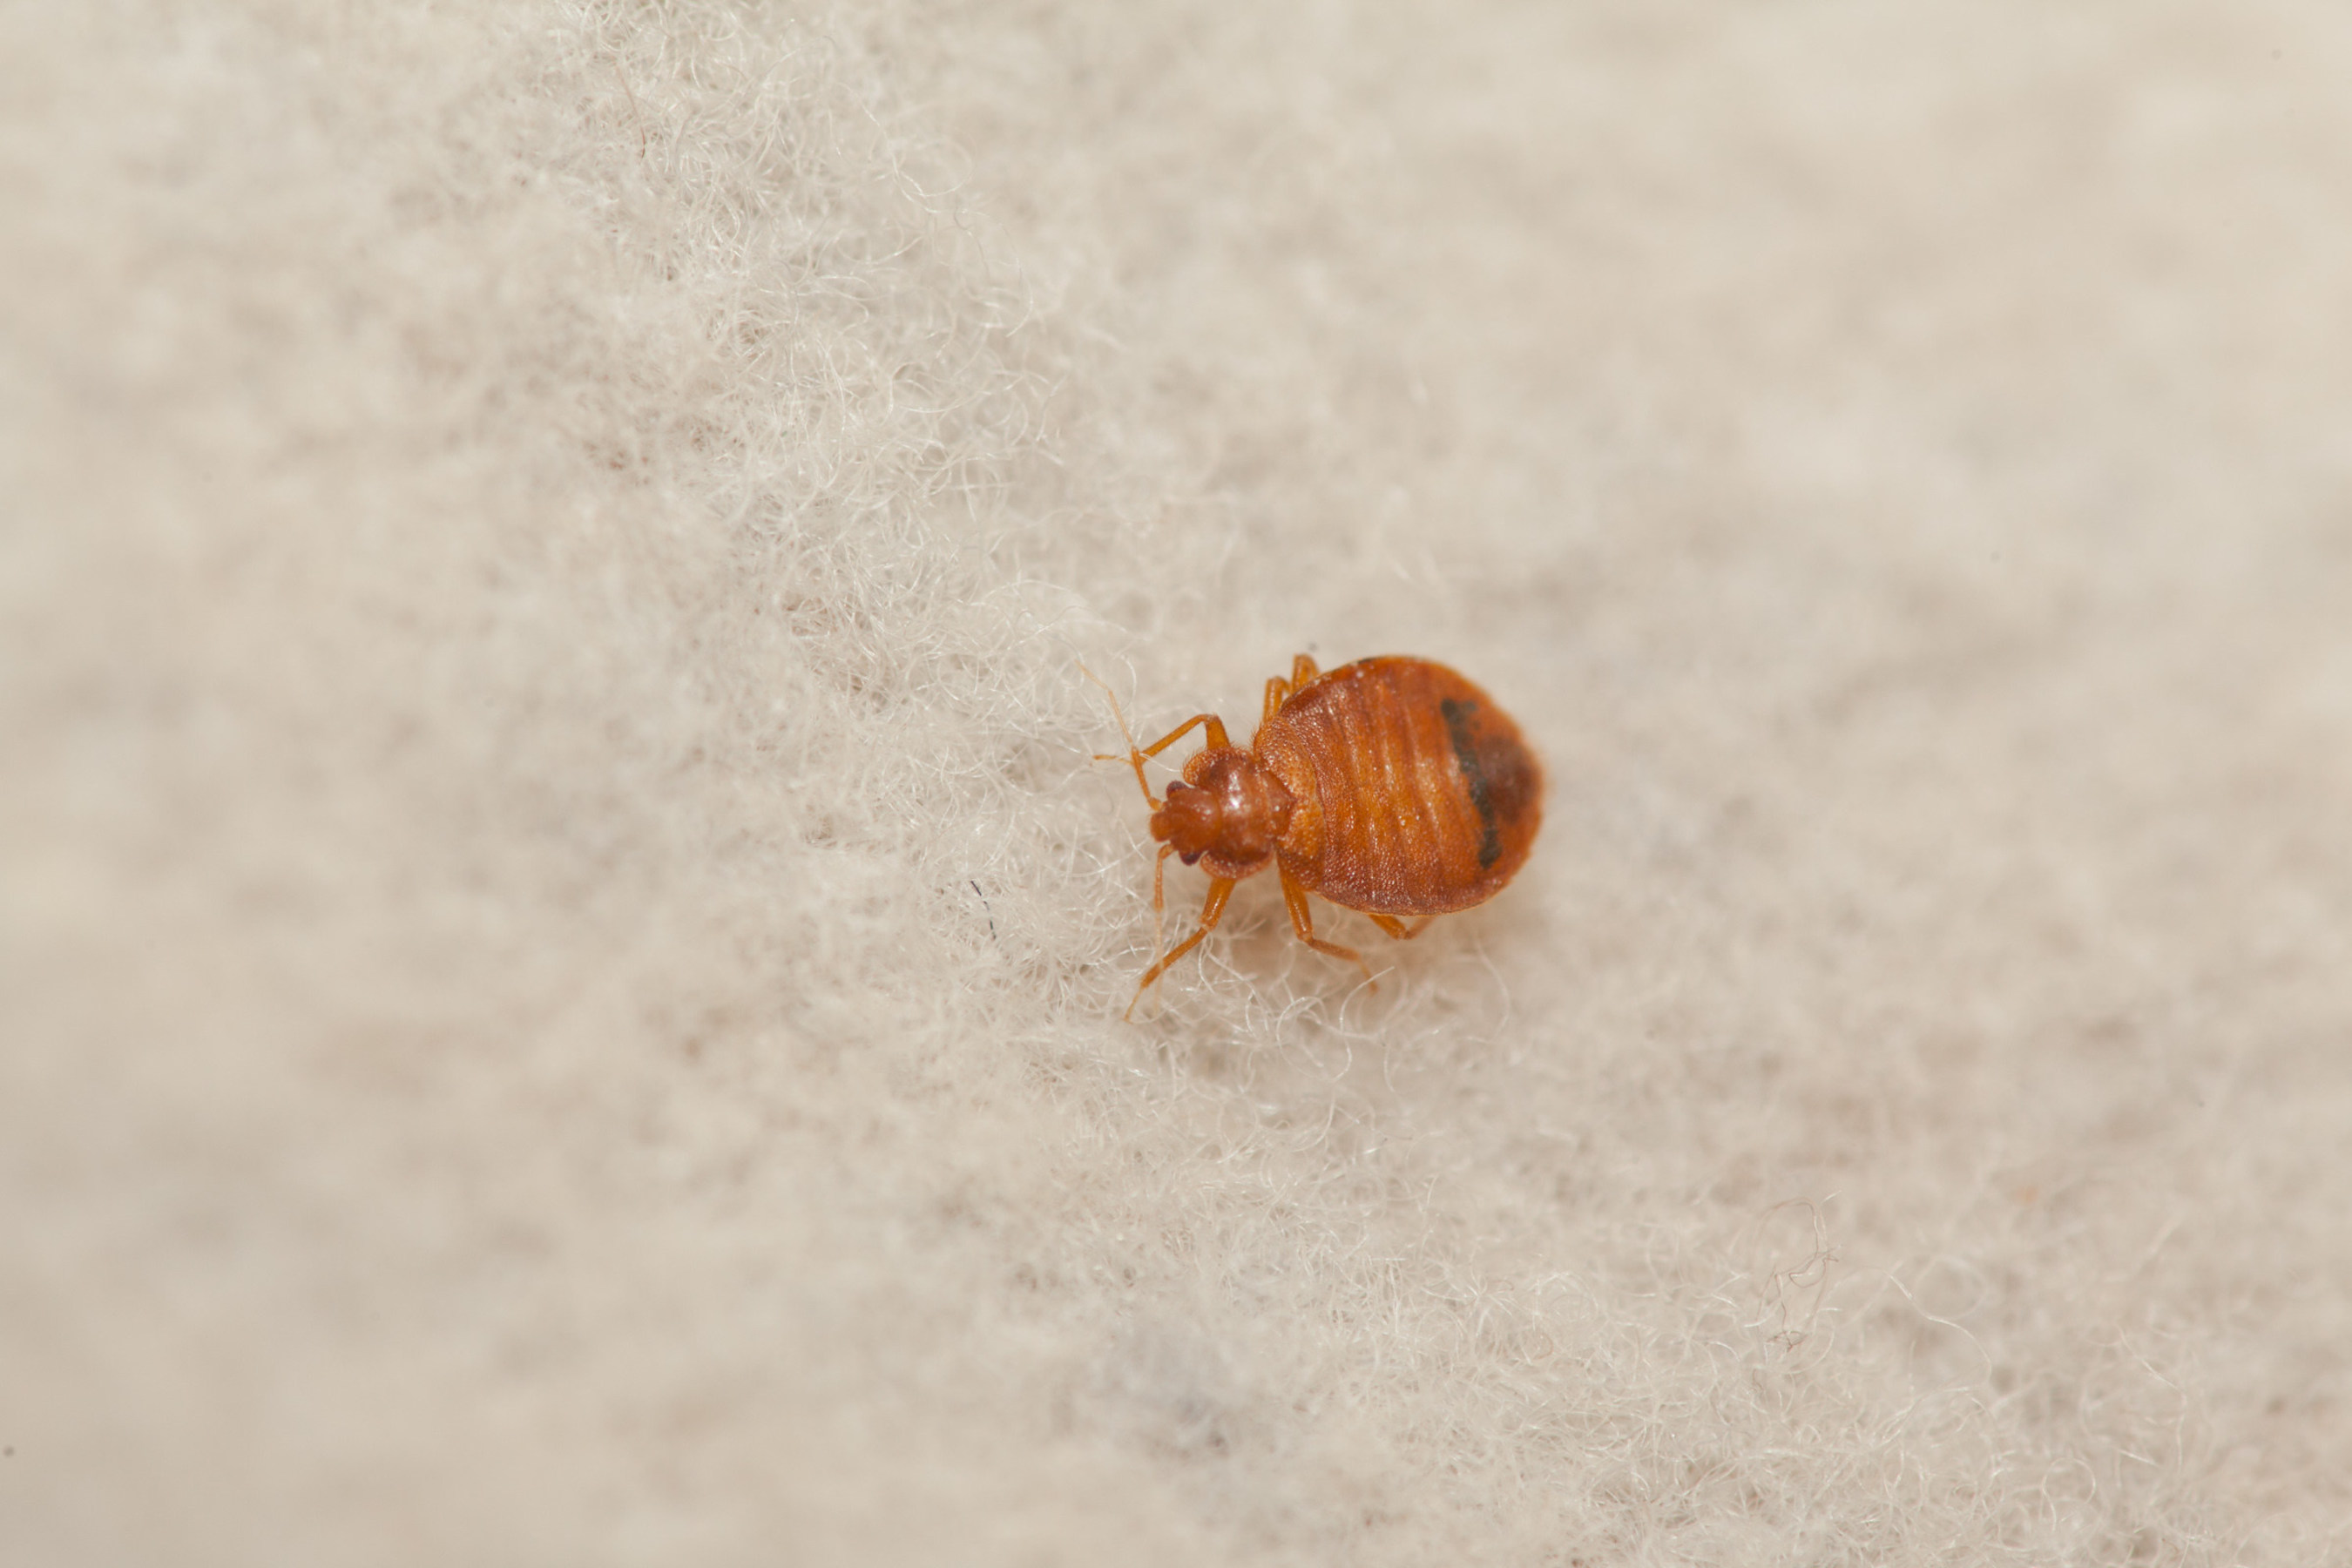 Chicago tops Orkin's bed bug cities list for the 3rd year in a row. Orkin experts say bed bugs are a ...